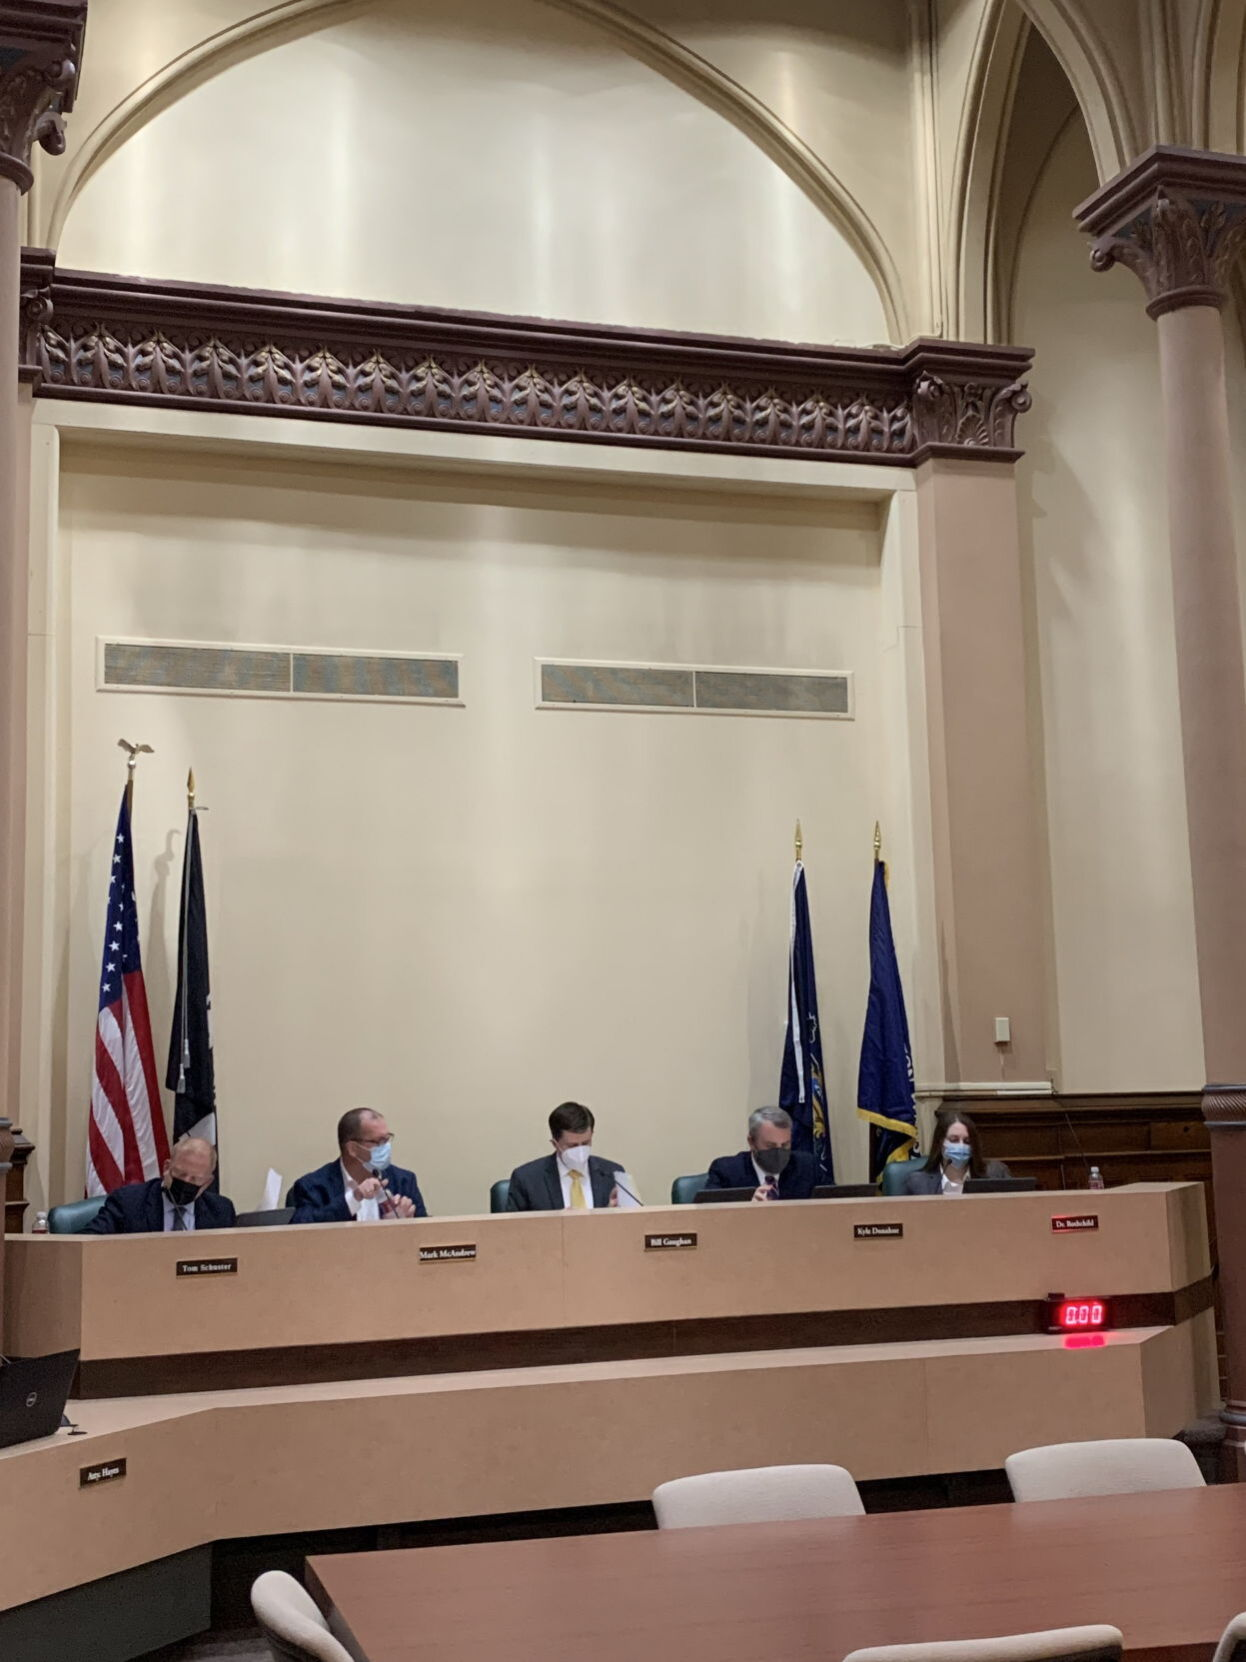 Scranton to pay back $23 million pension loan two years early